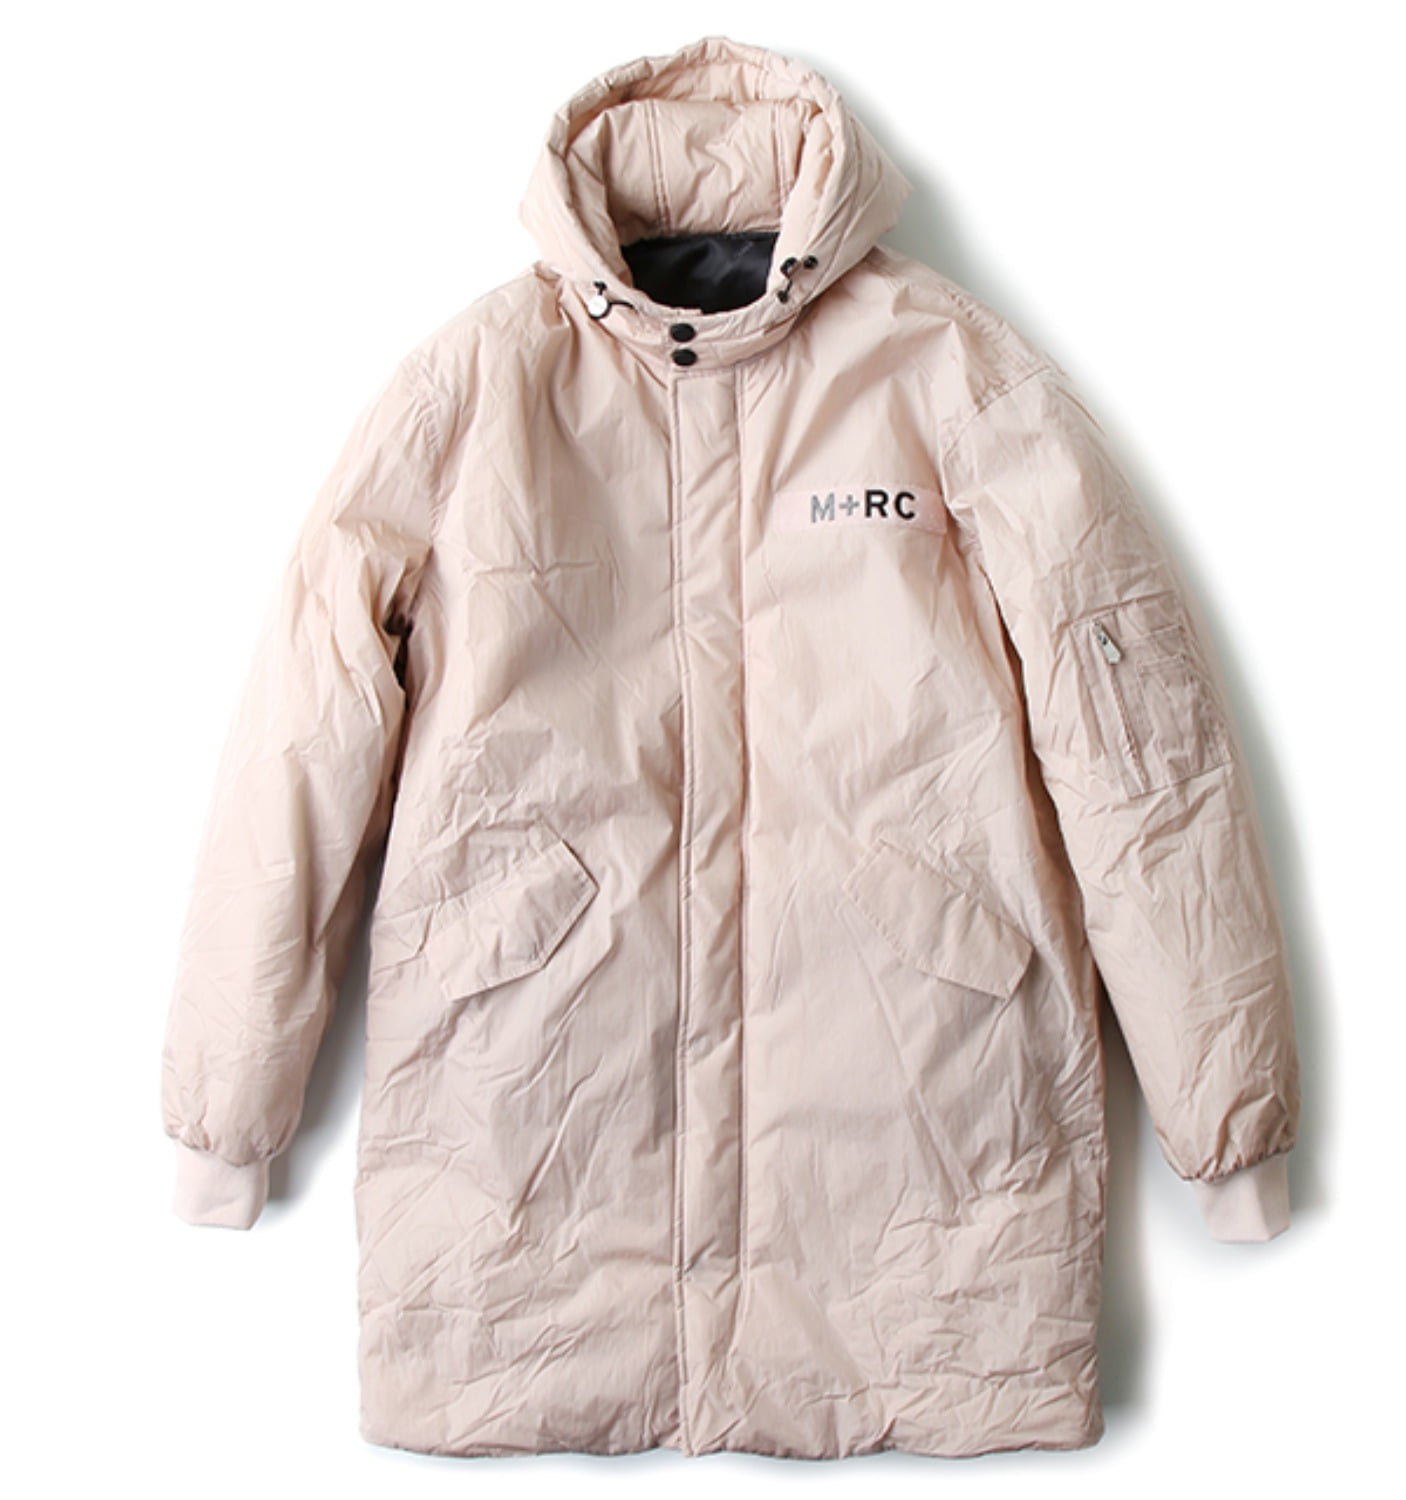 ROSE PARKA JACKET REFLECTIVE LOGO